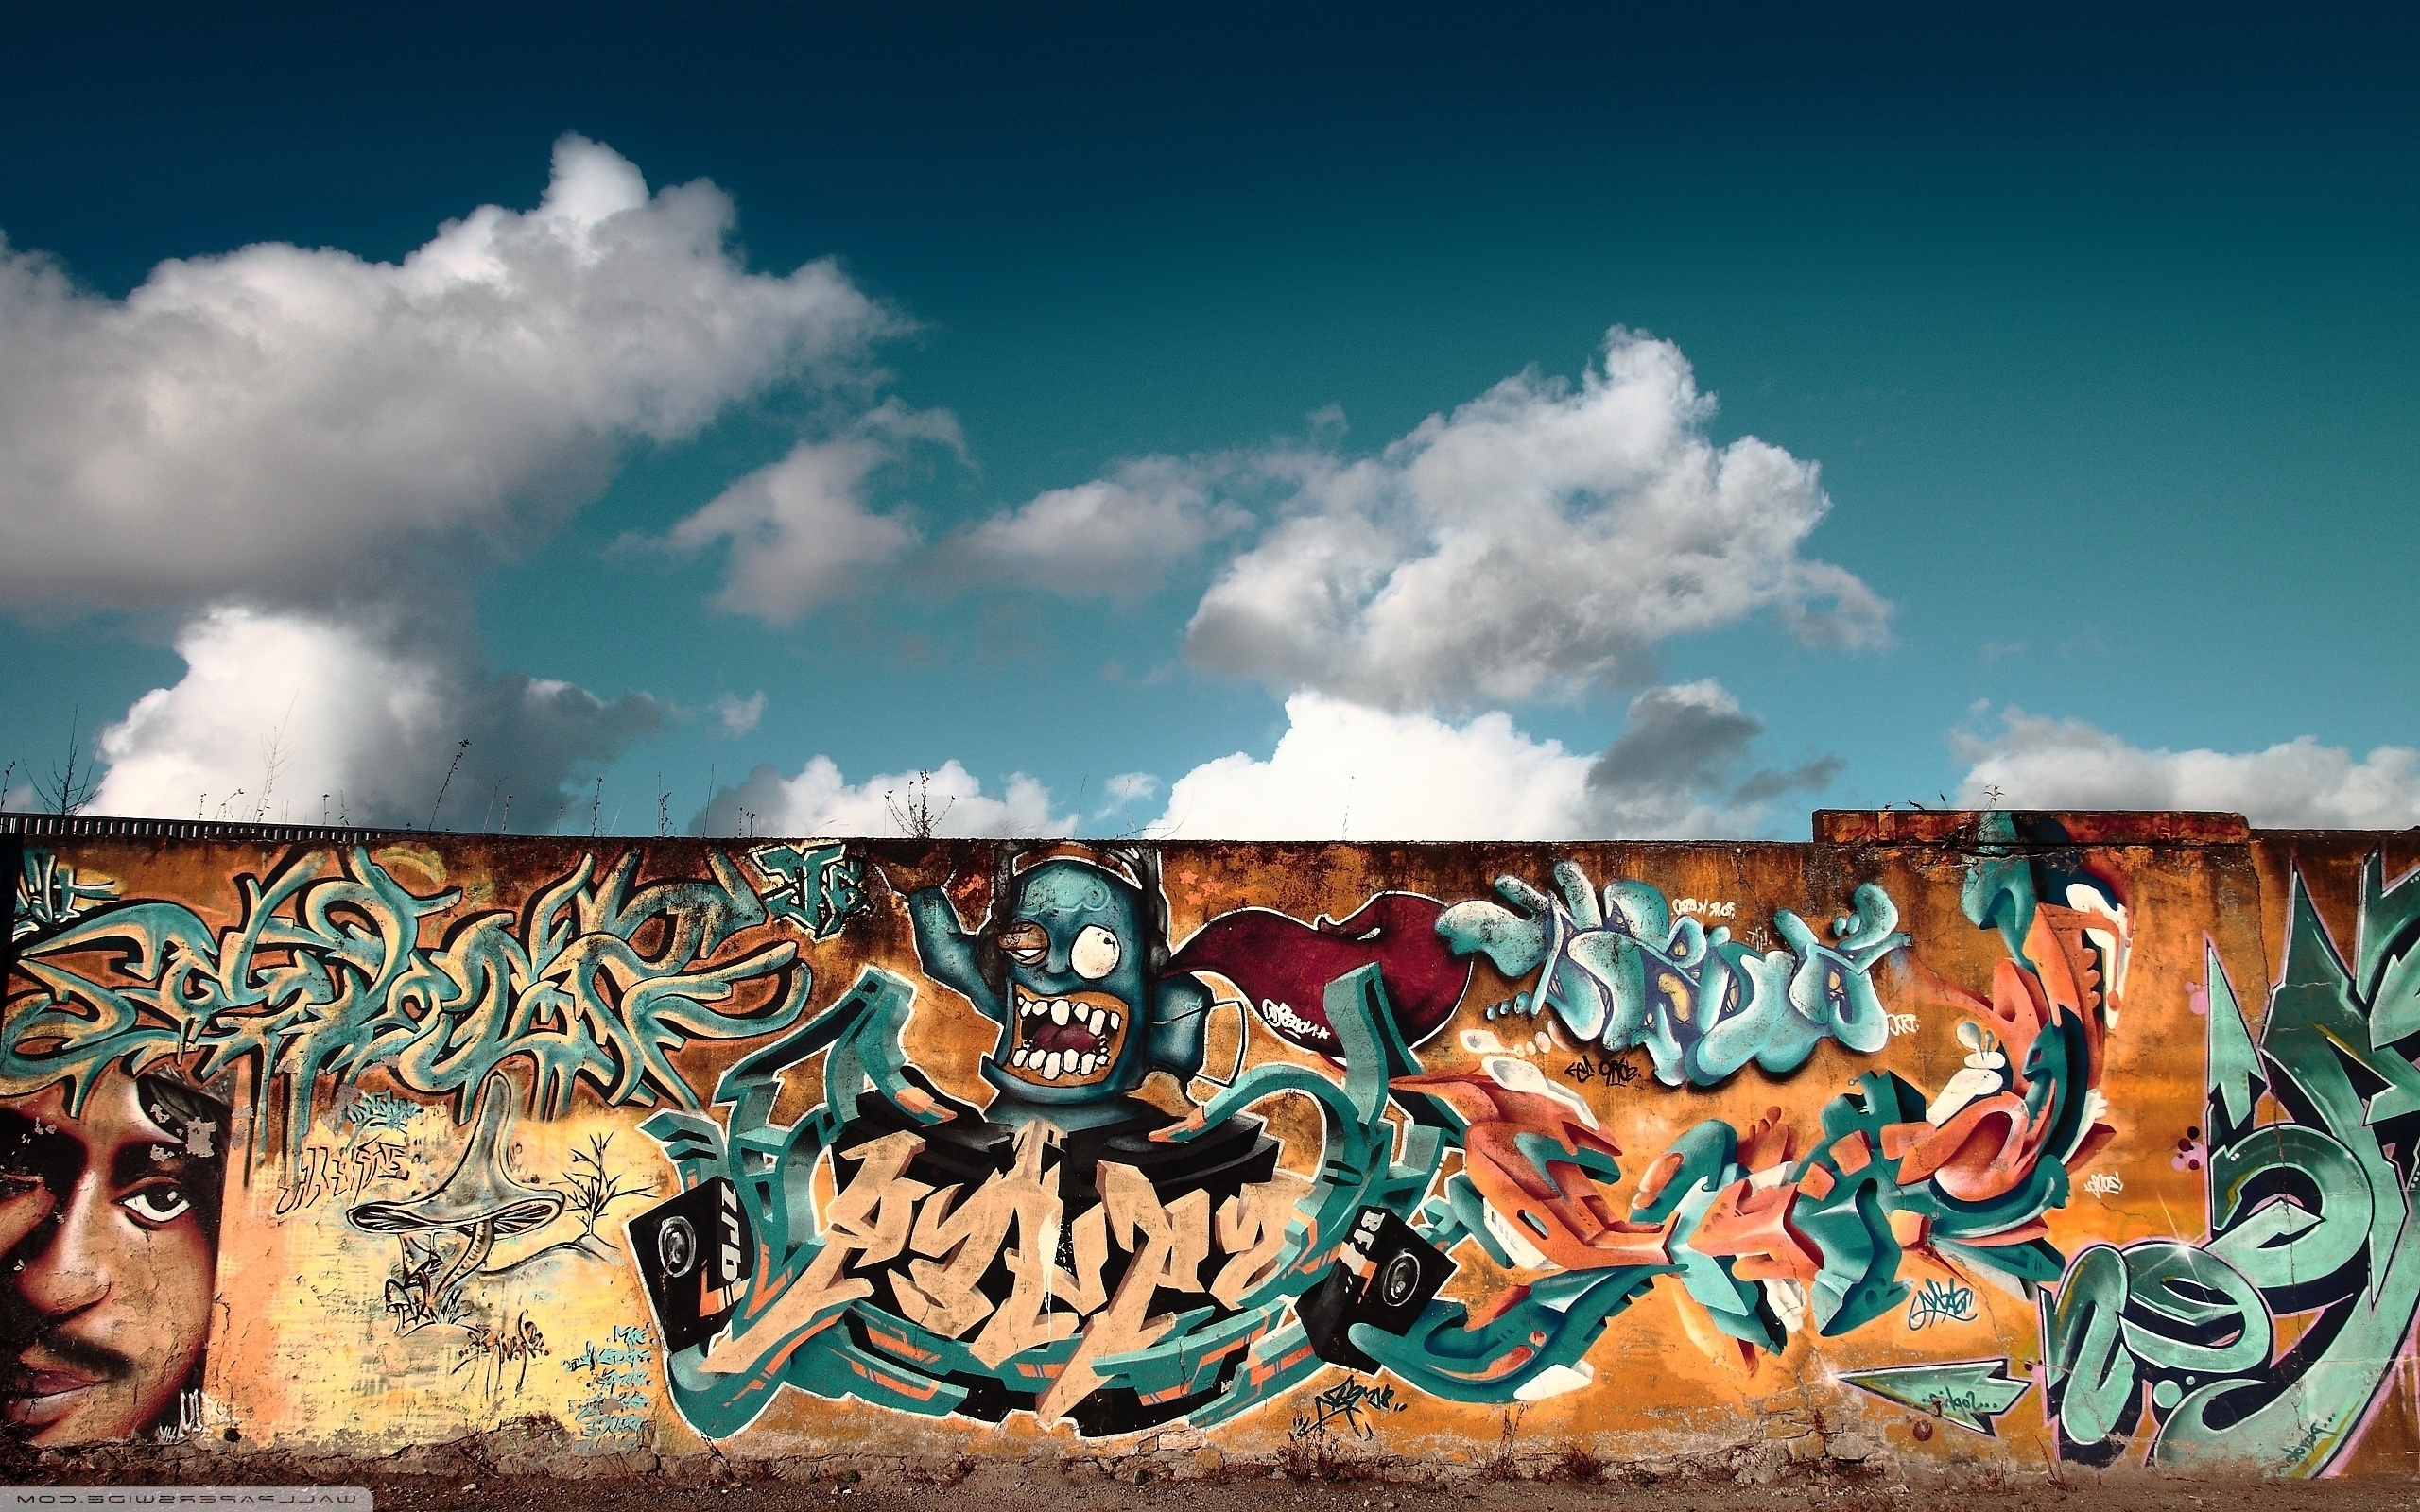 Graffiti Wall Art ❤ 4K Hd Desktop Wallpaper For 4K Ultra Hd Tv Pertaining To Preferred Graffiti Wall Art (Gallery 8 of 15)